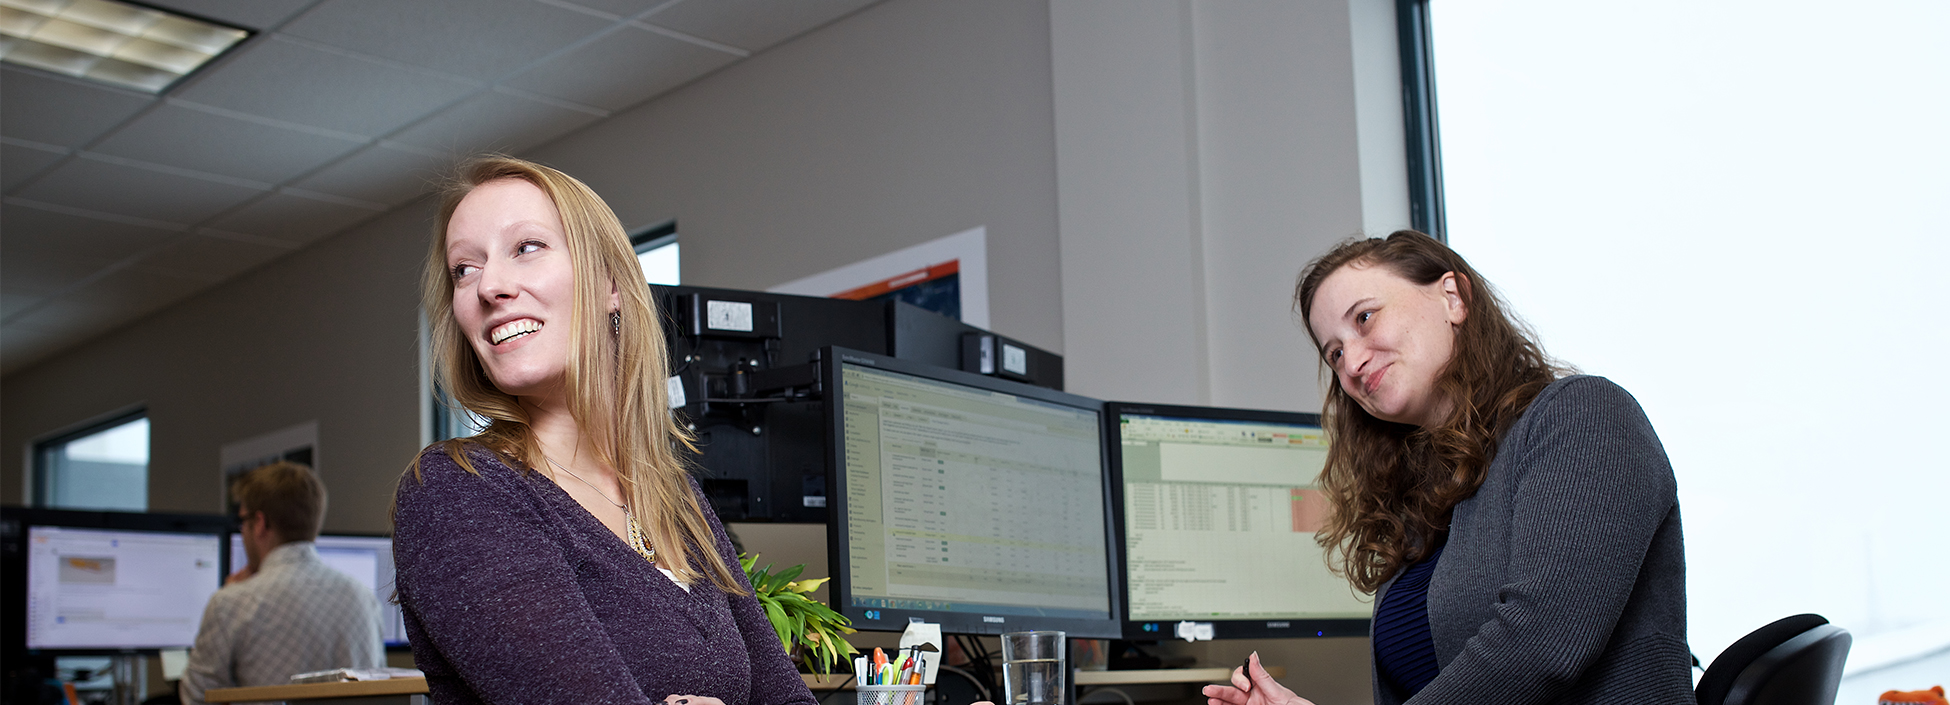 Two employees are sitting near a computer station, smiling at something off to the left not seen in the photo.